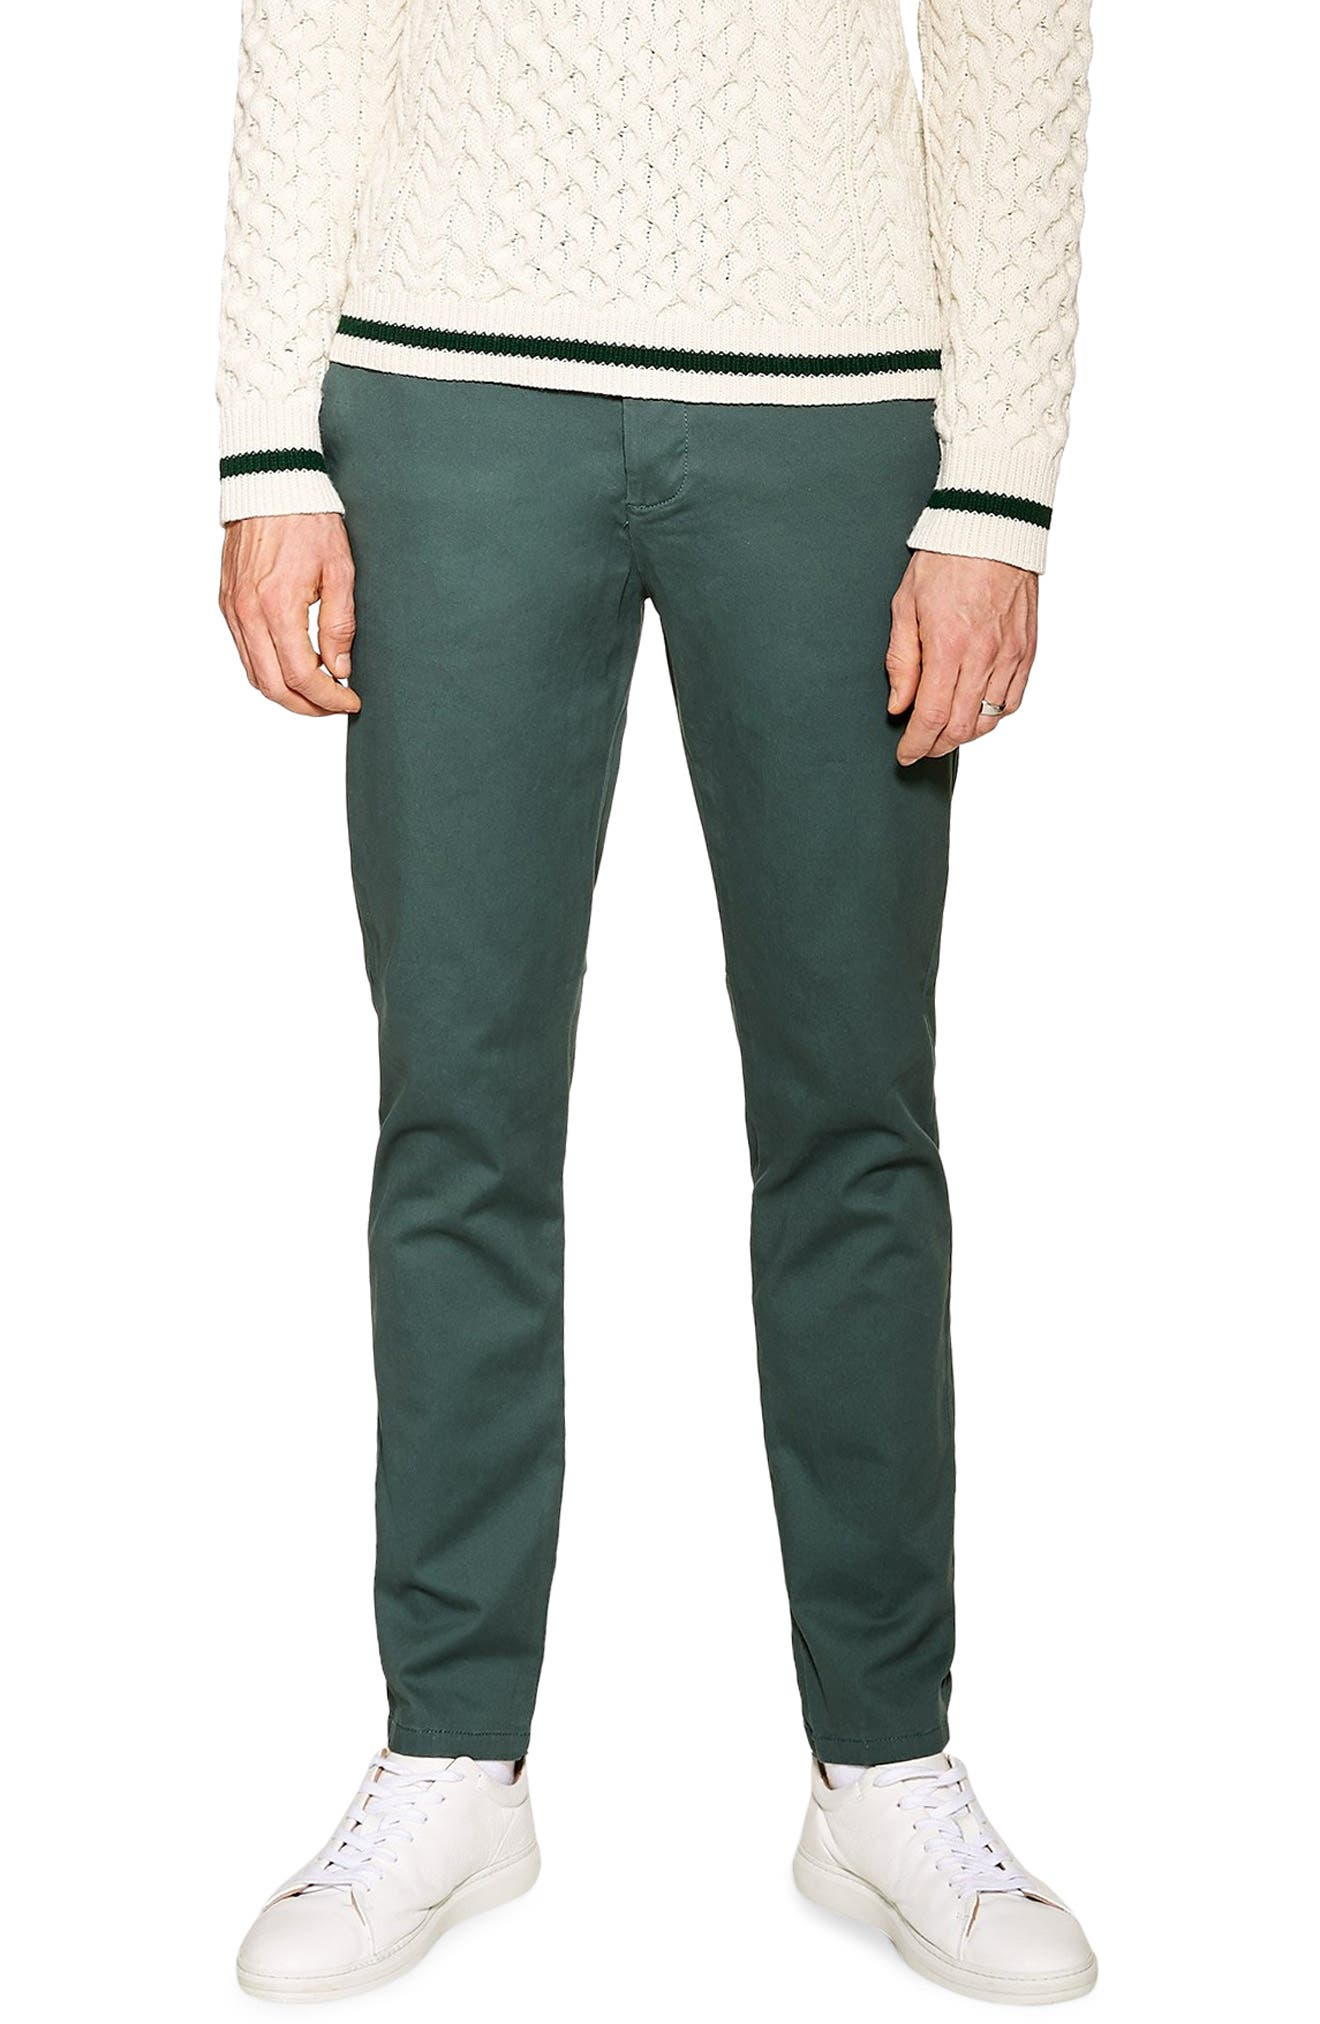 TOPMAN, Stretch Skinny Fit Chinos, Main thumbnail 1, color, GREEN